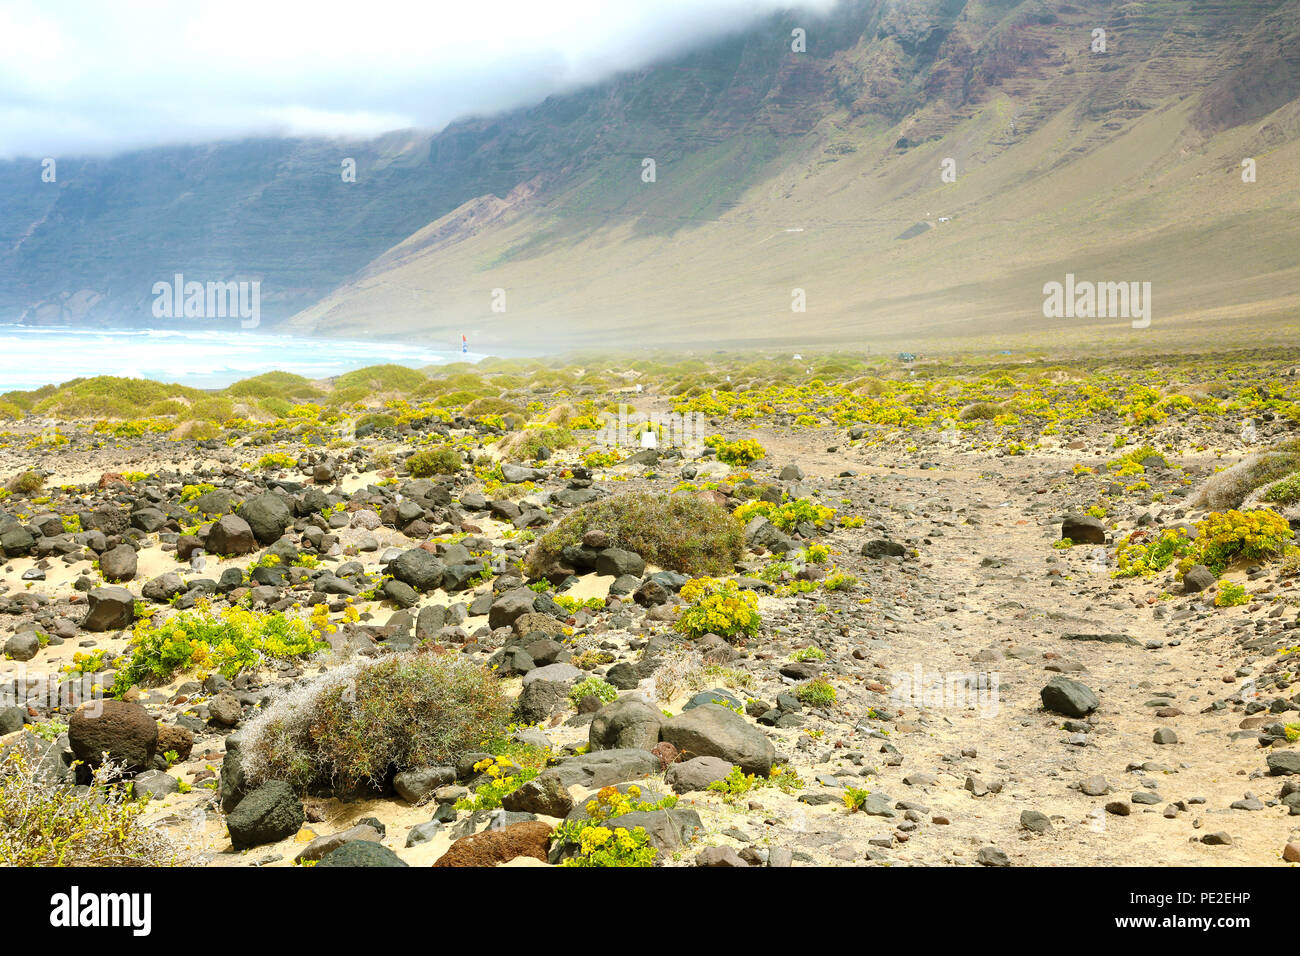 Fabulous enchanted landscape on Lanzarote Island with stone and green yellow vegetation with Atlantic Ocean and misty mountain on the background - Stock Image